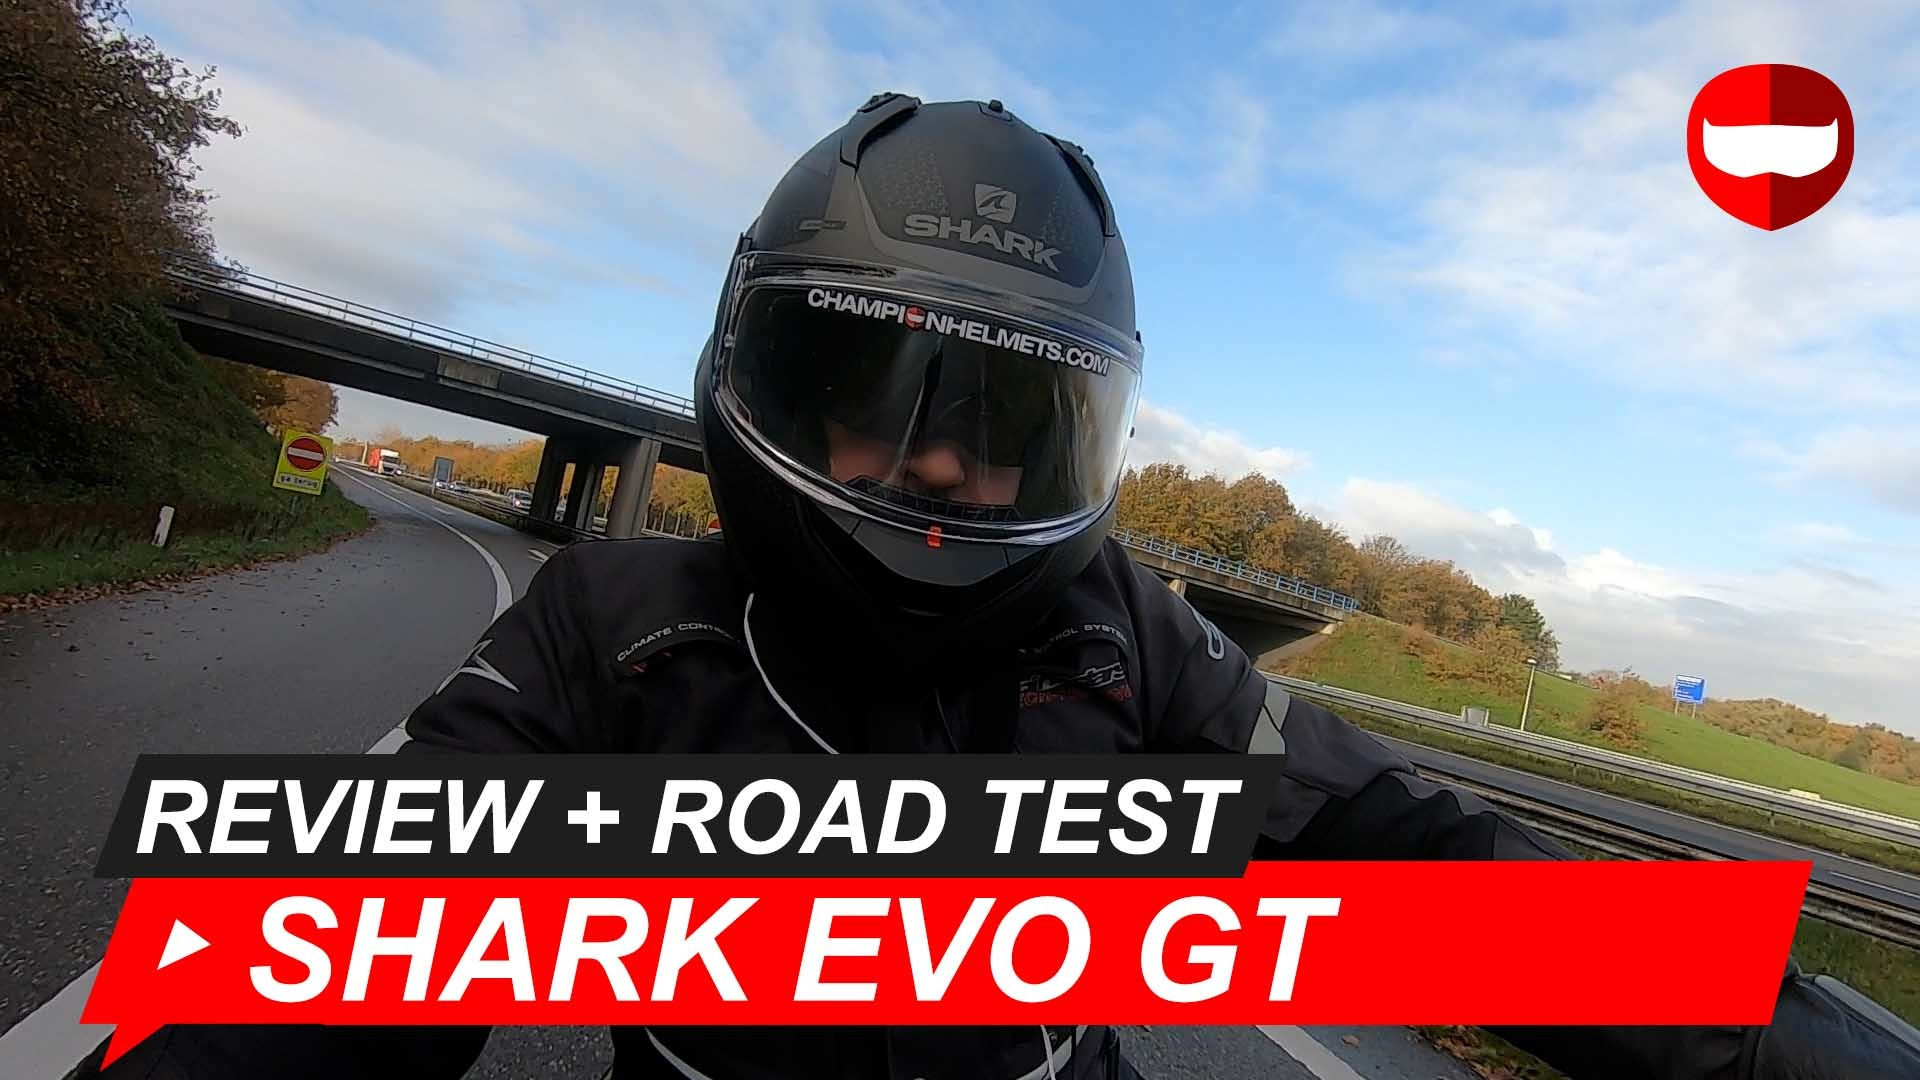 Shark EVO GT Review and Road Test + Video